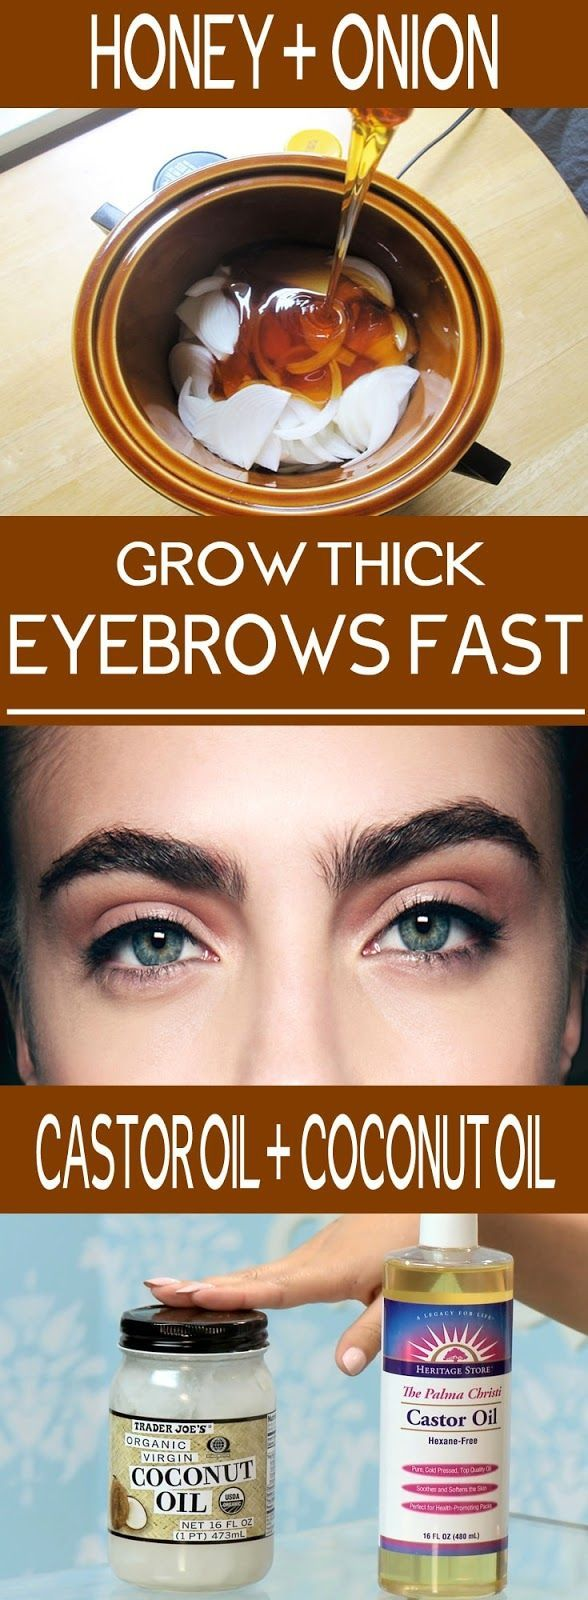 Best Grow Thicker Eyebrows Ideas On Pinterest Grow Eyelashes - Get thicker eye brows naturally eyebrow growing tips